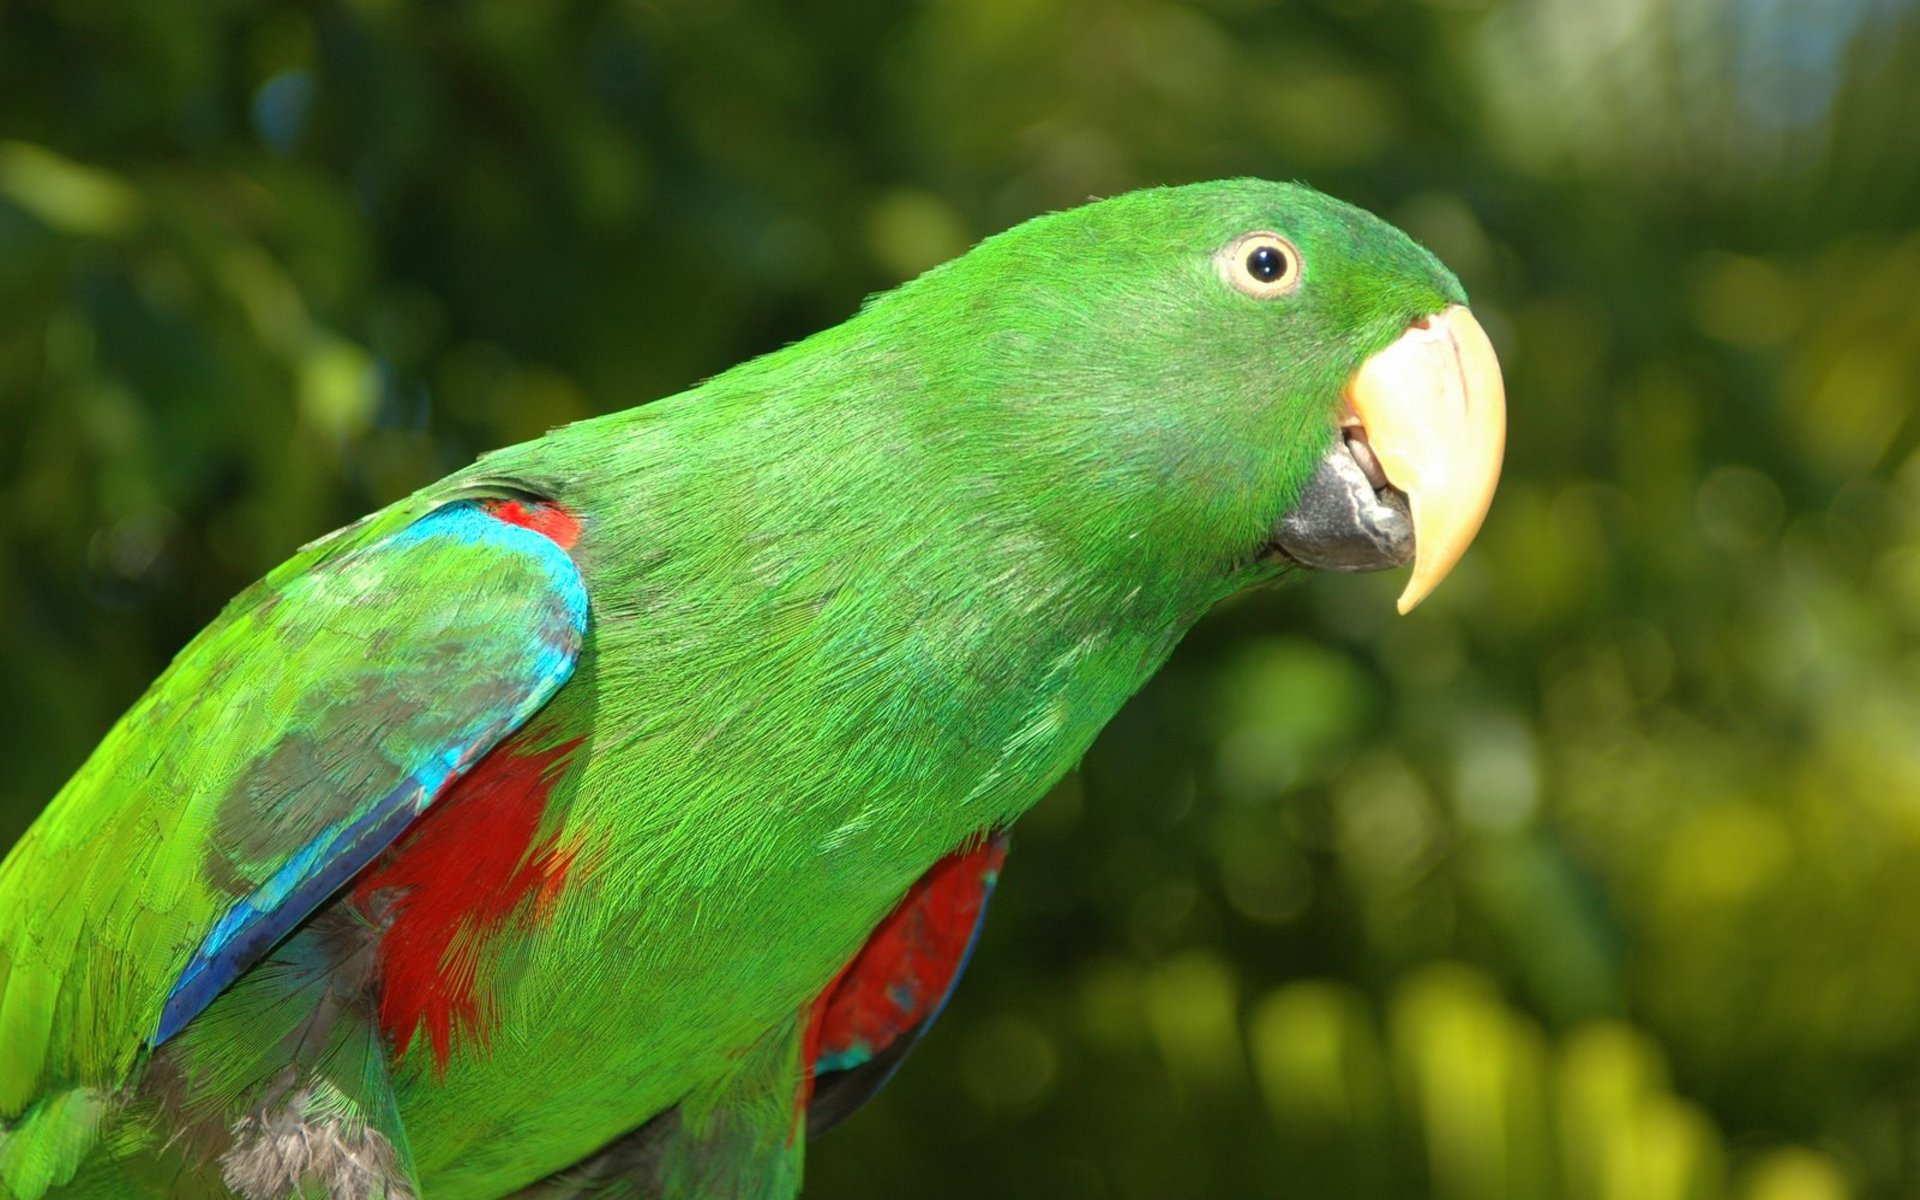 Download hd 1920x1200 Parrot PC background ID:25743 for free